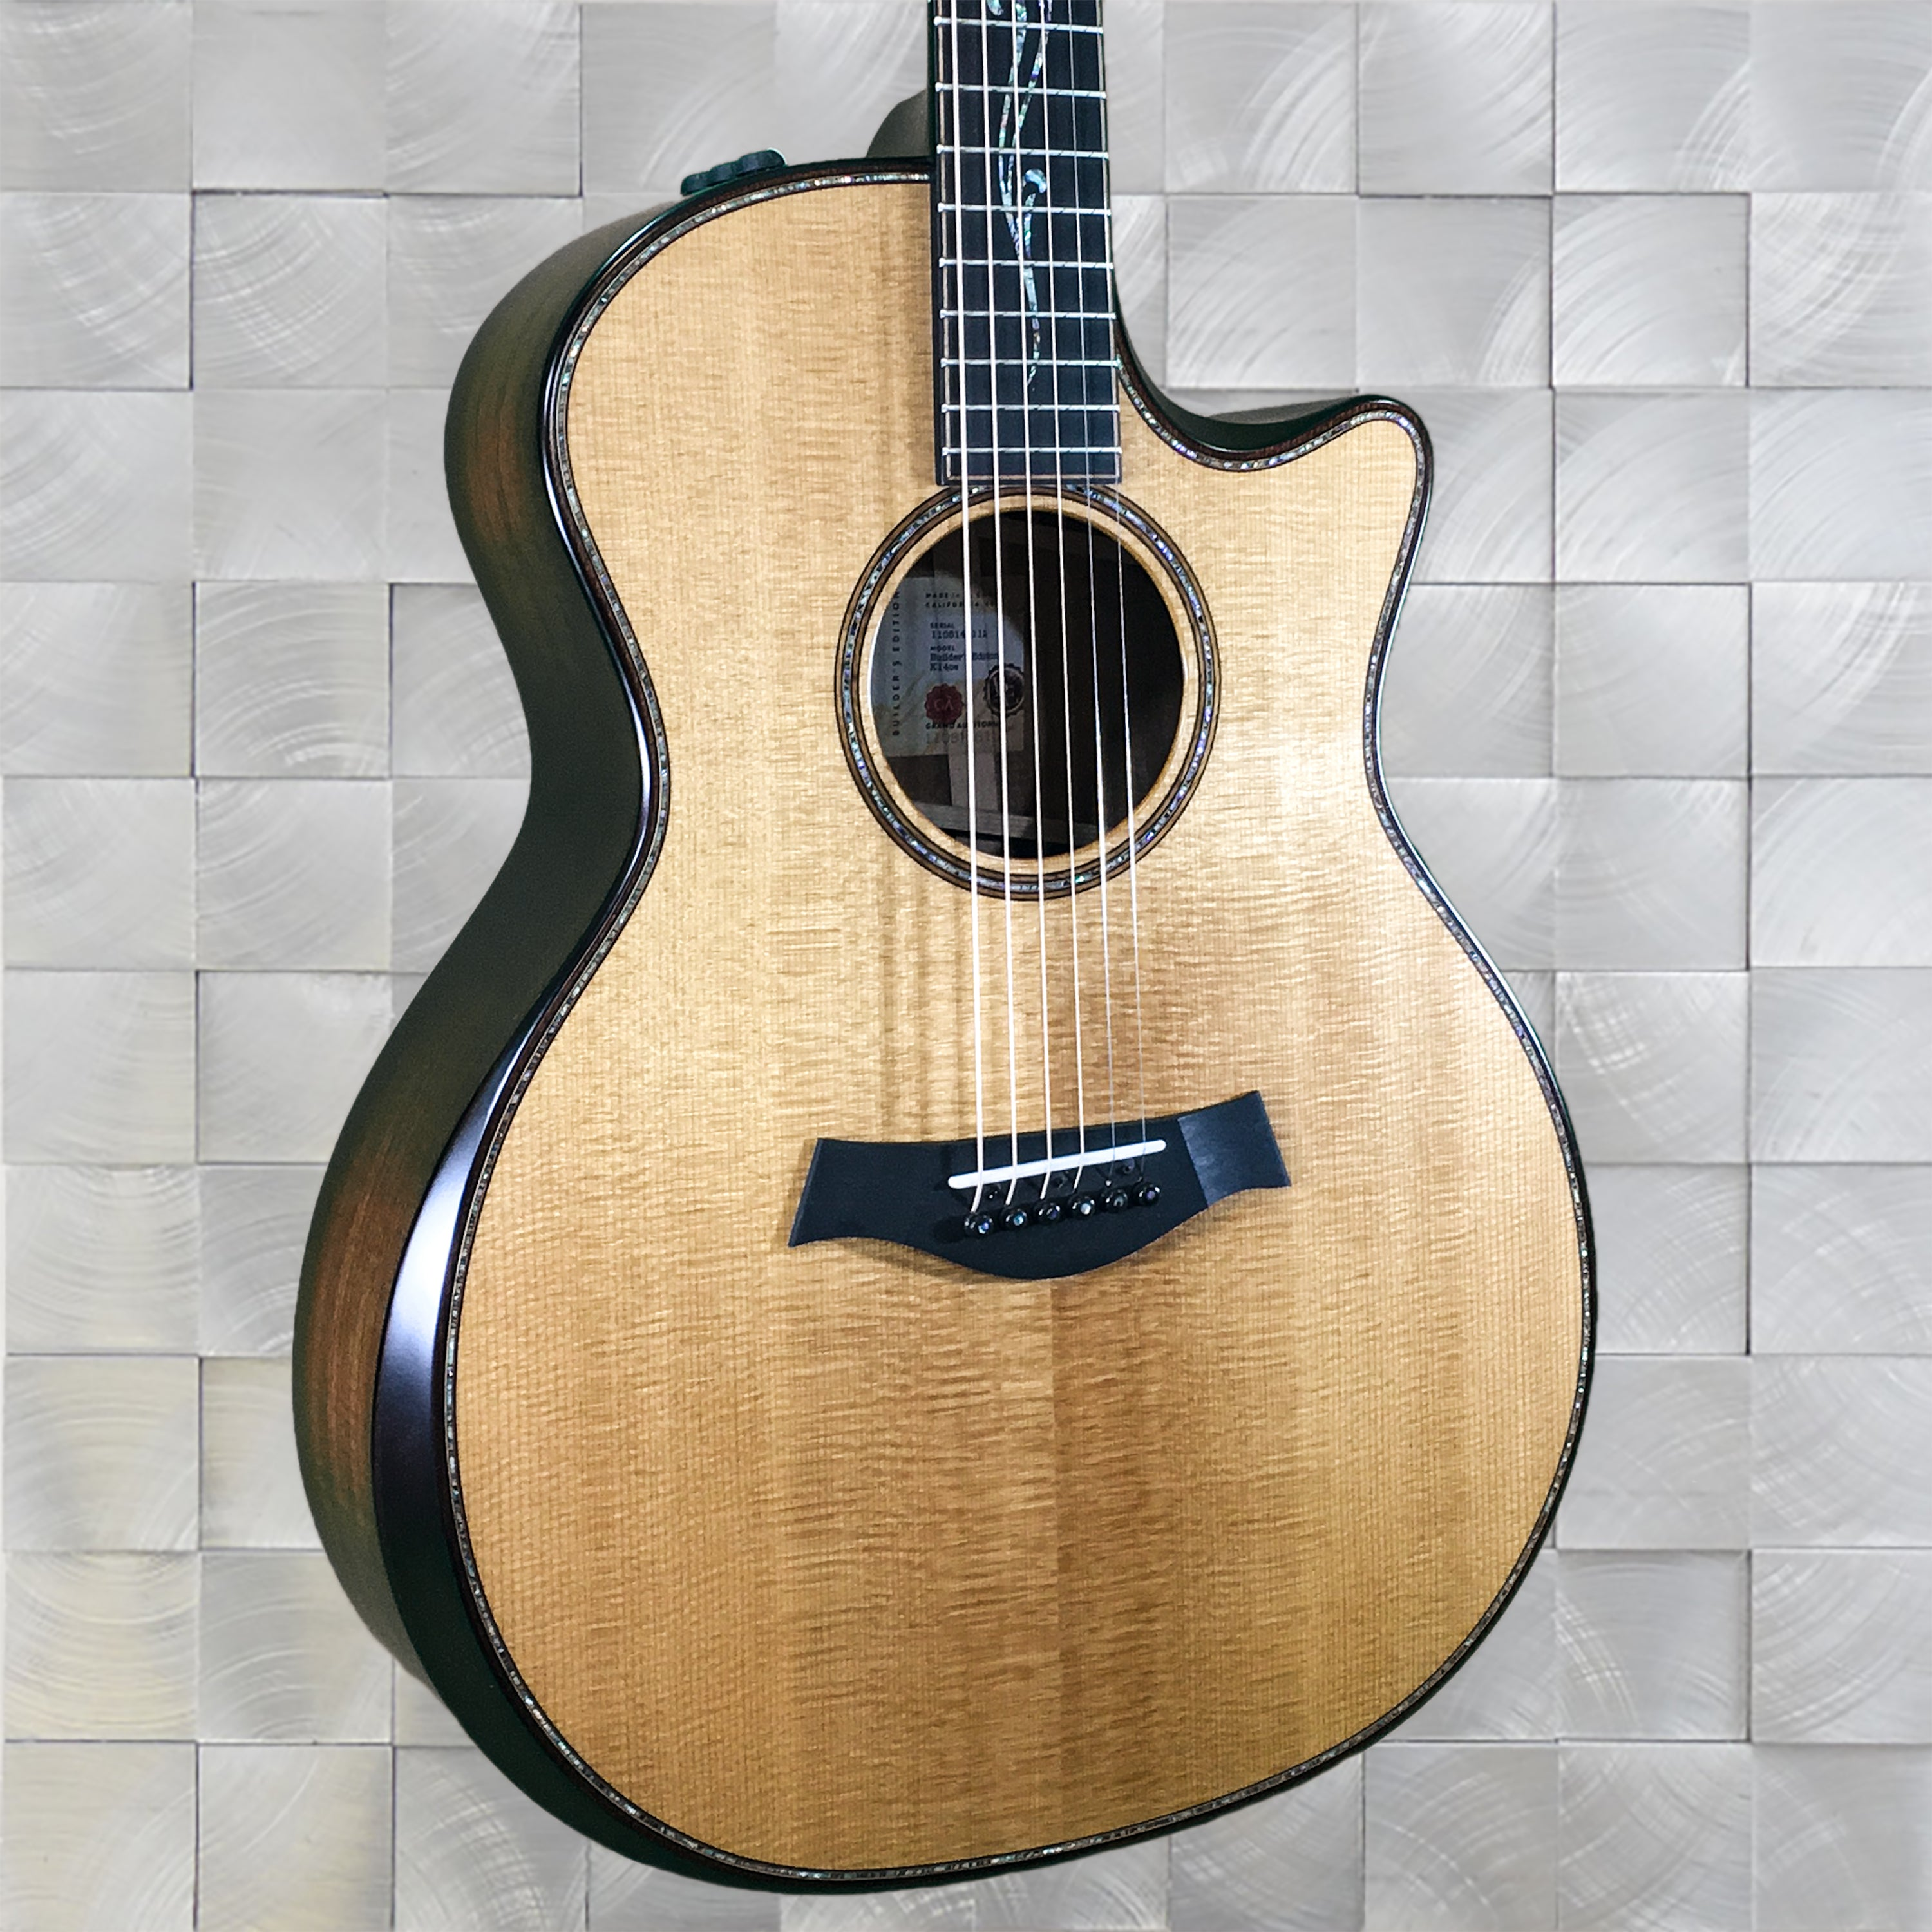 Taylor Tagged Guitars Page 2 Huber Breese Music Guitar Kit Builder Understanding The 5way Switch K14ce V Class Builders Edition Grand Auditorium Acoustic Kona Burst